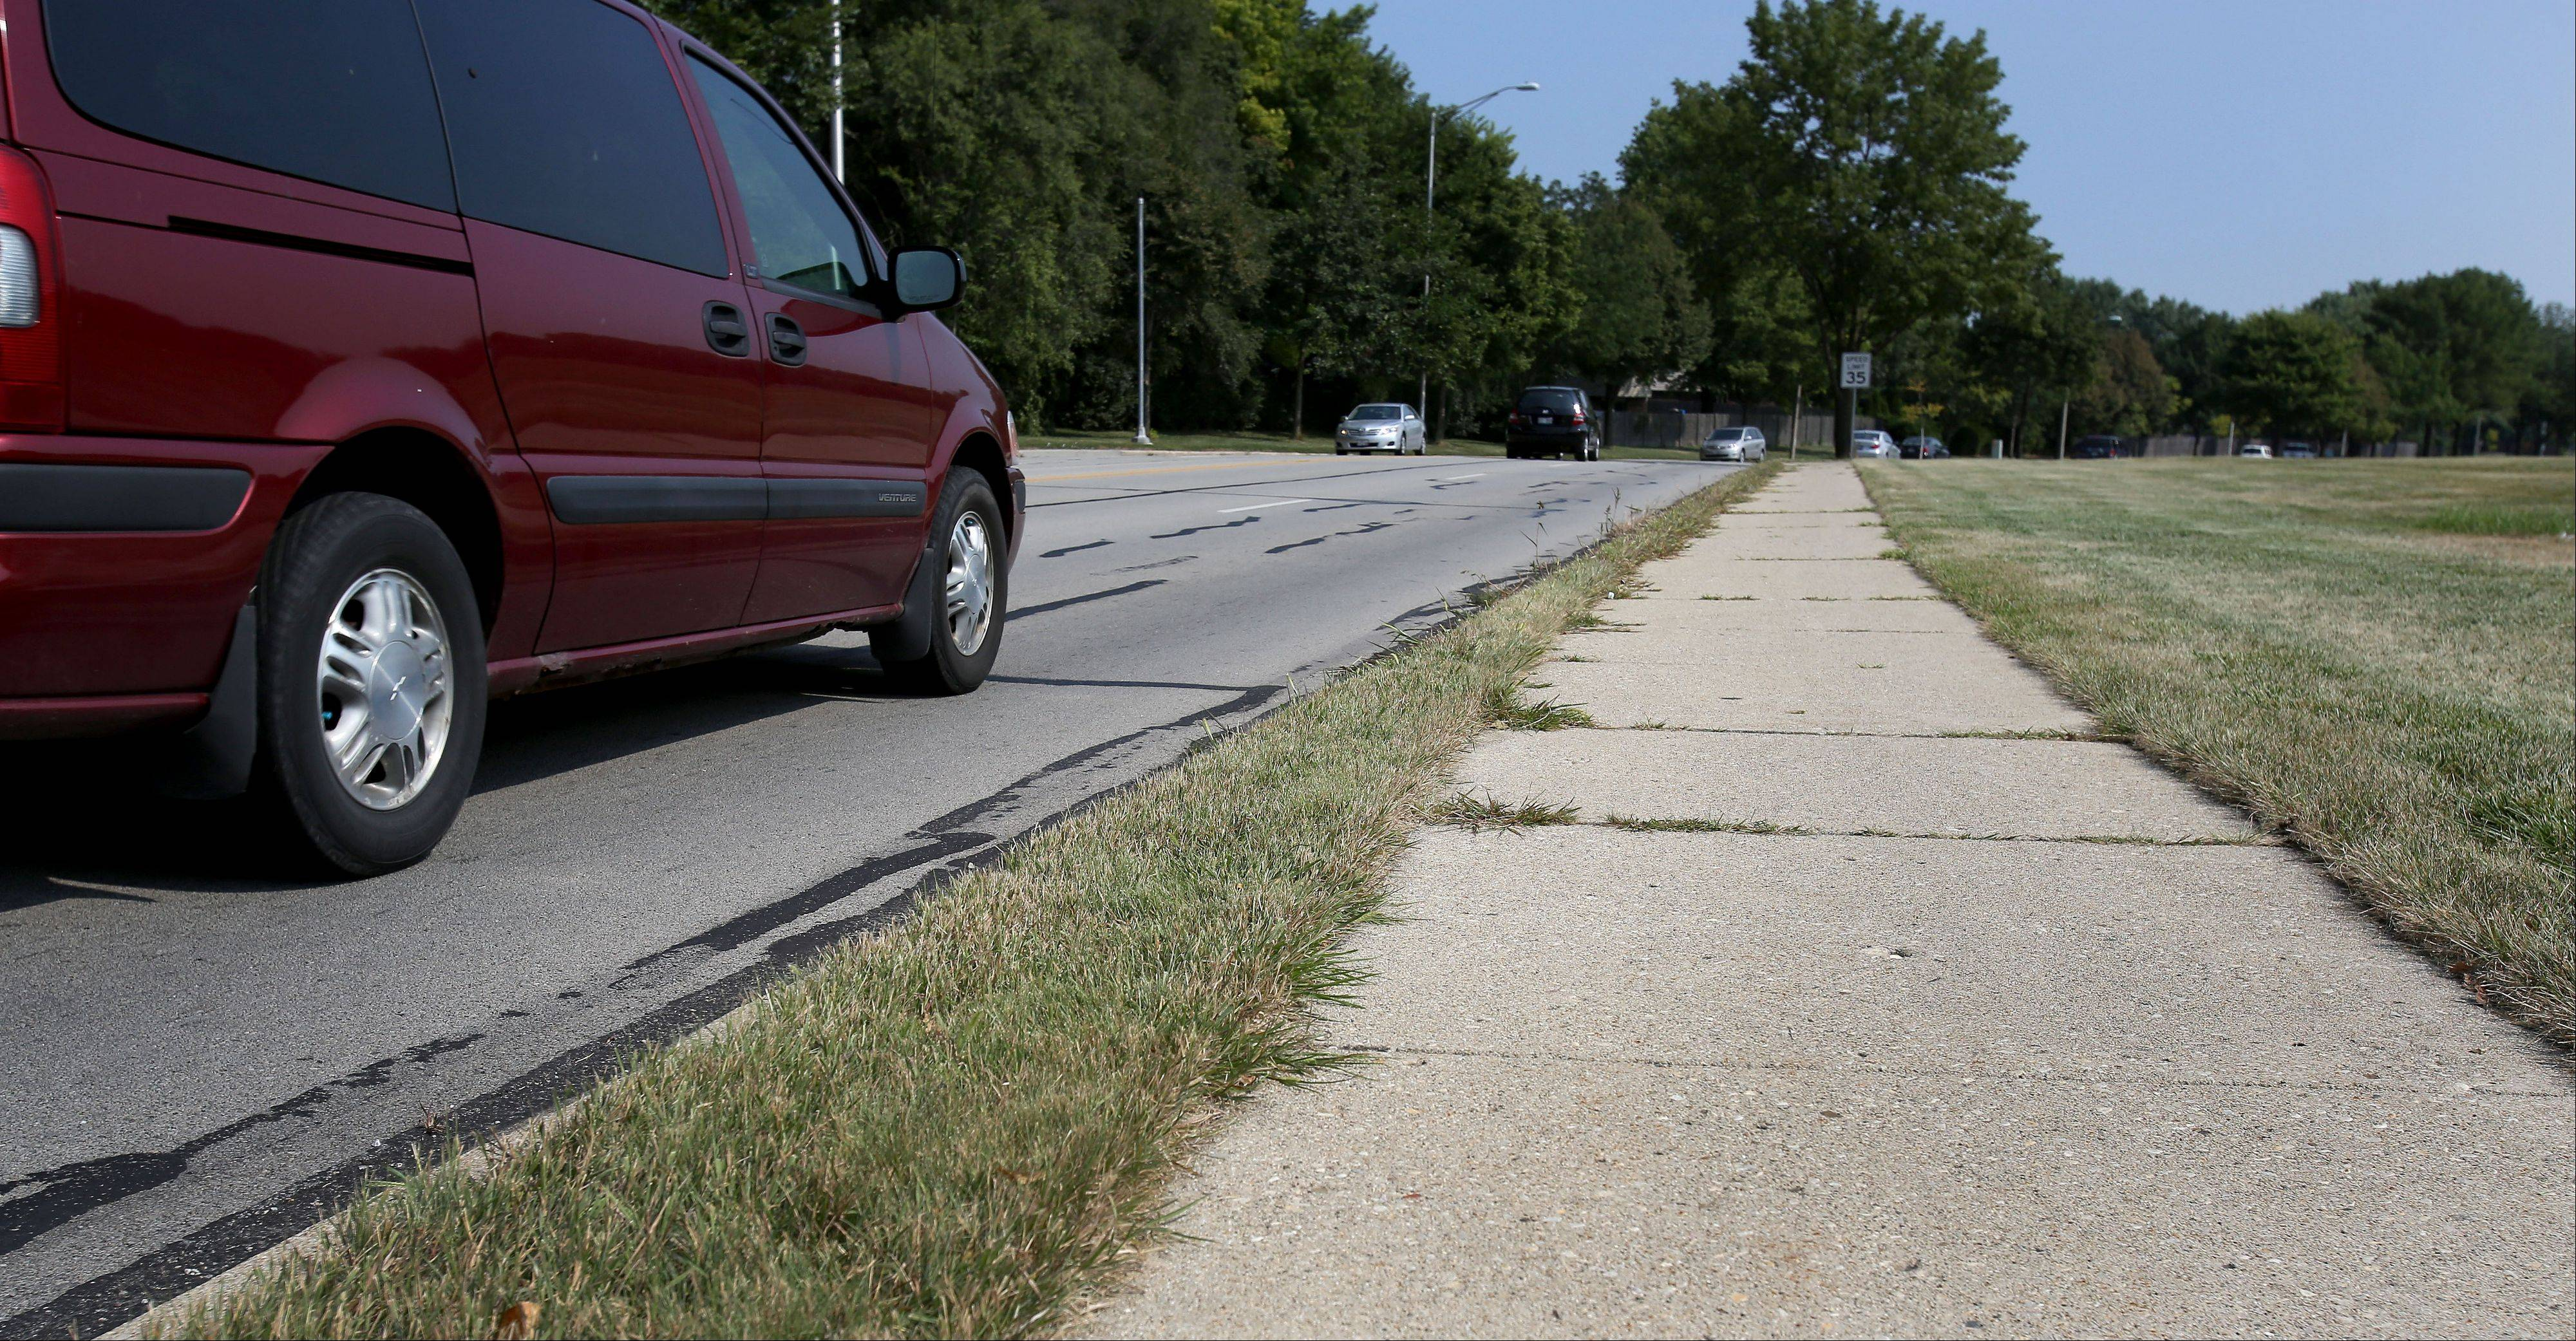 The city of Naperville will be working to move this stretch of sidewalk, on the east side of Washington Street just north of Bauer Road, further from traffic after a resident voiced concerns at Tuesday's city council meeting. The 200-foot section would cost an estimated $15,000 to move further from the road if Naperville Unit District 203, which owns the land, grants an easement.